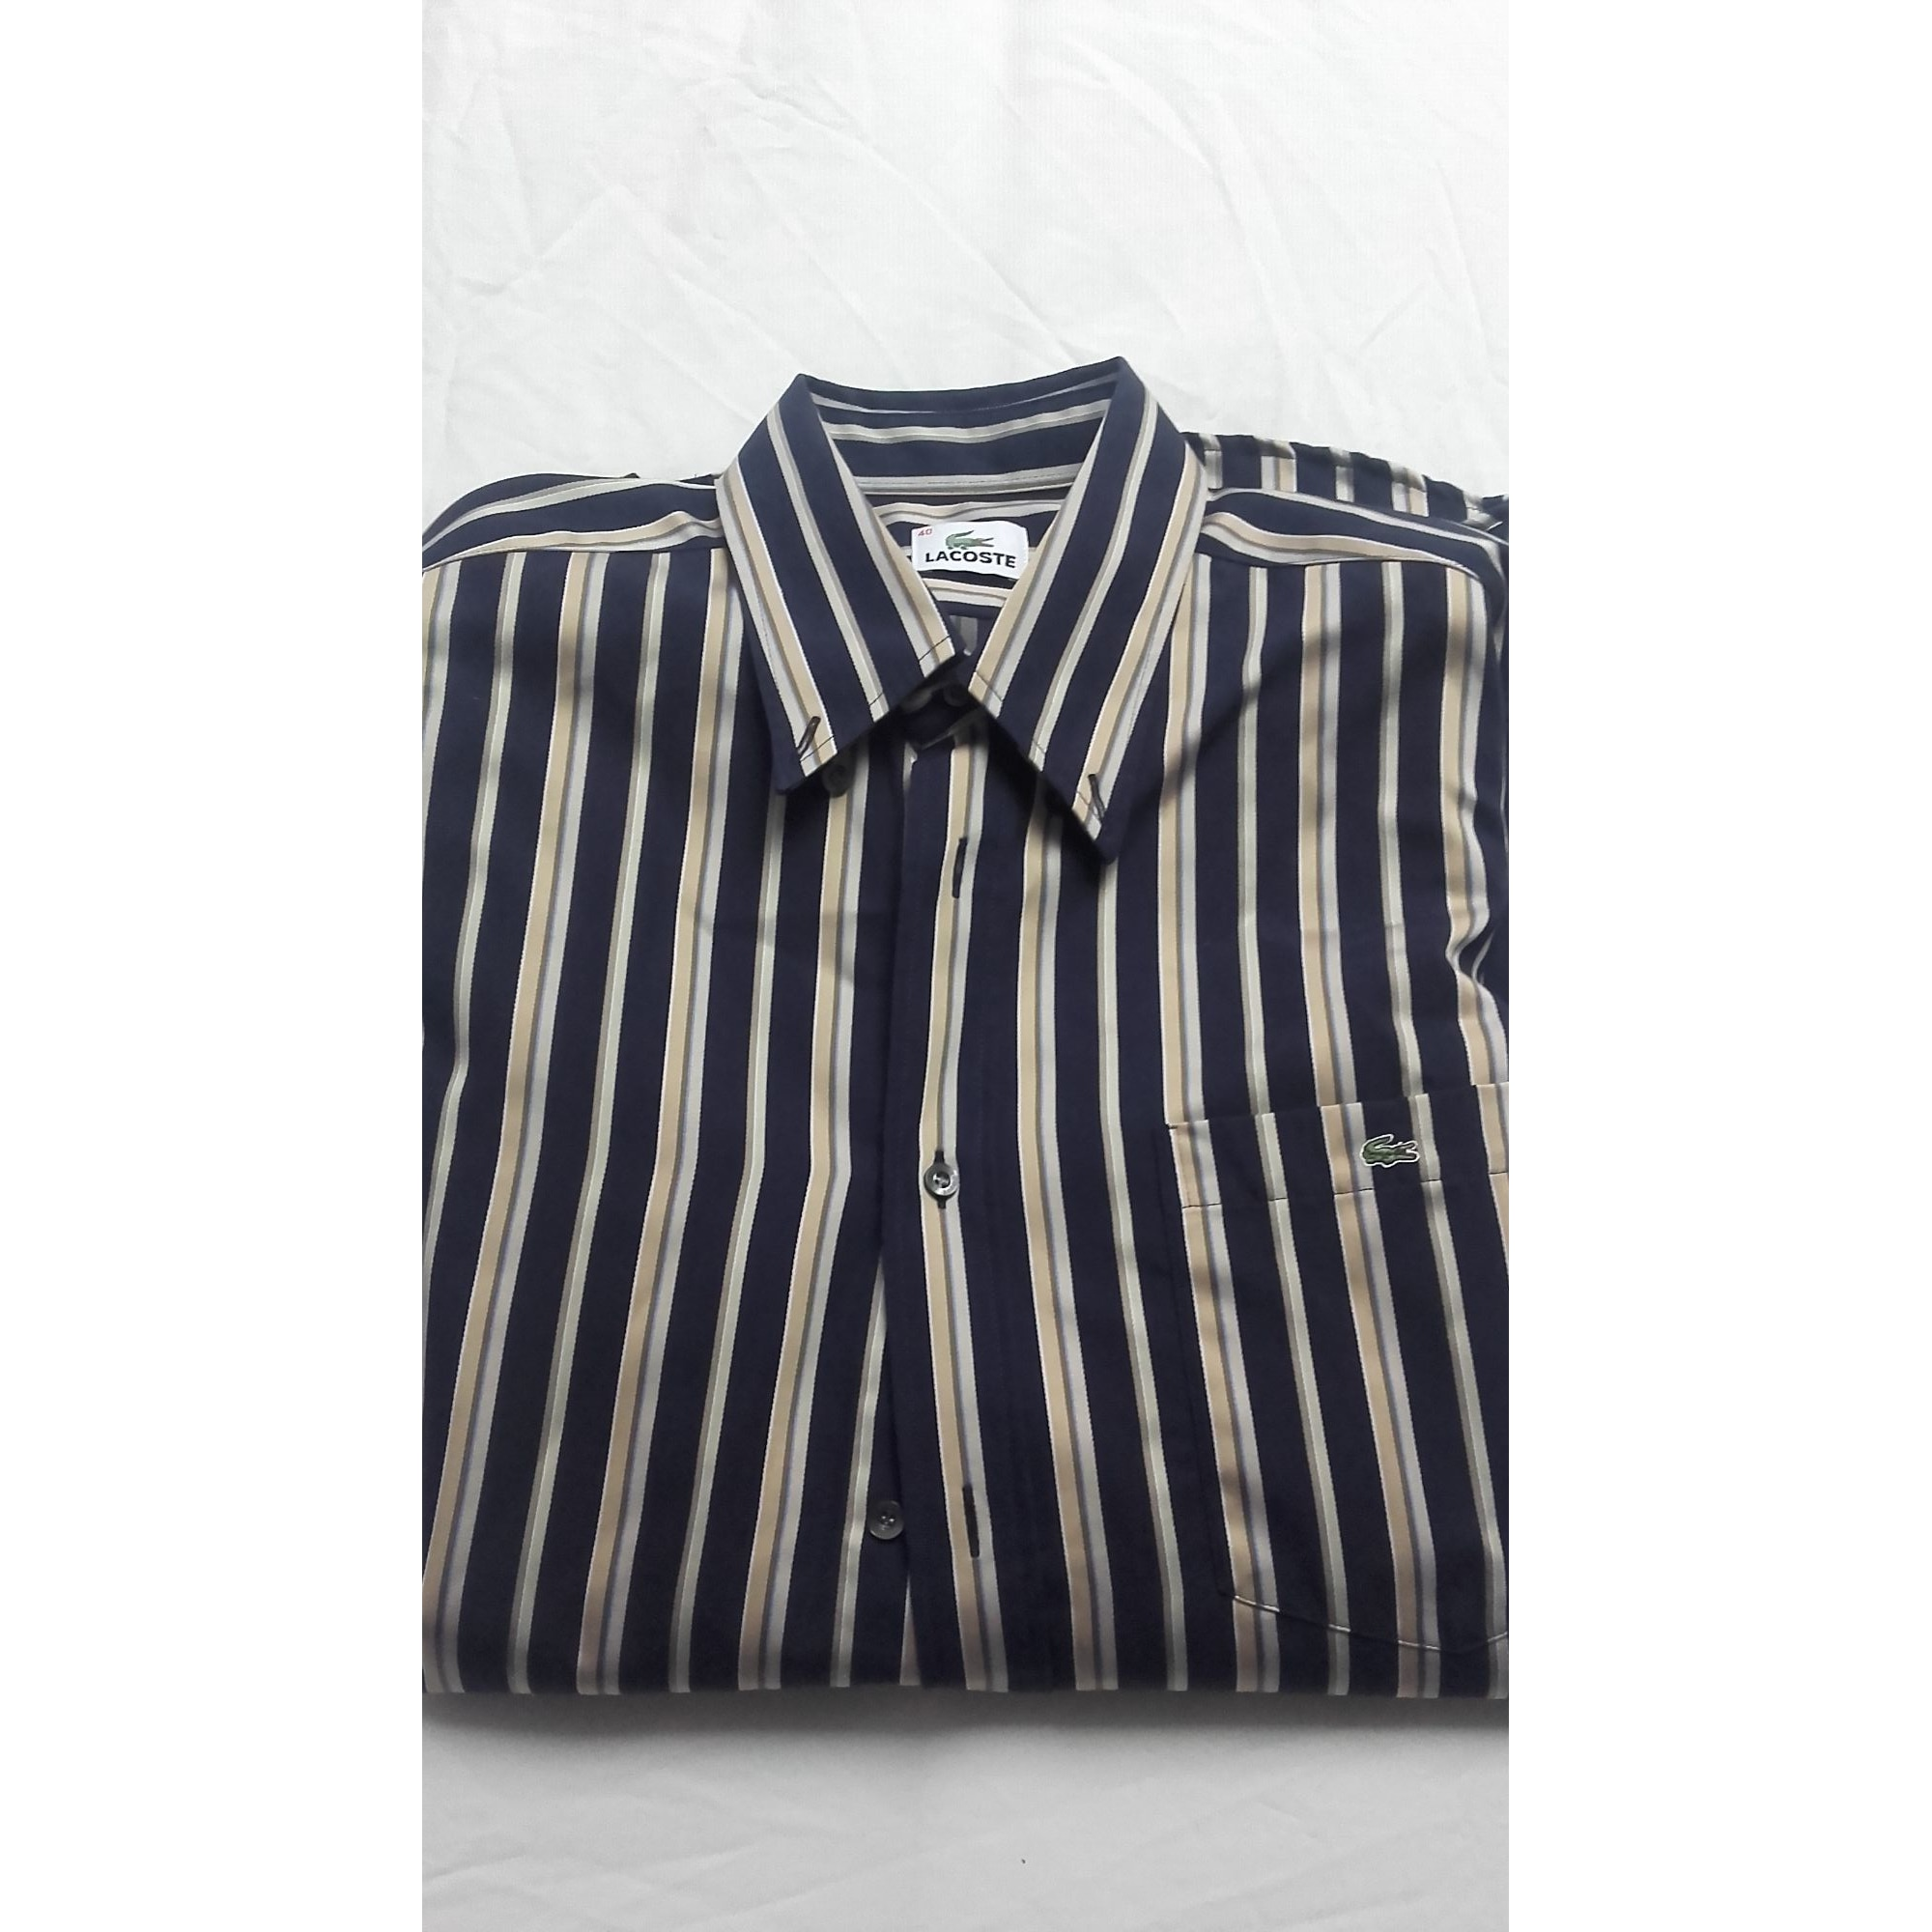 Veste Rayures Veste Chemise Lacoste Lacoste Chemise Rayures 8OP0knw